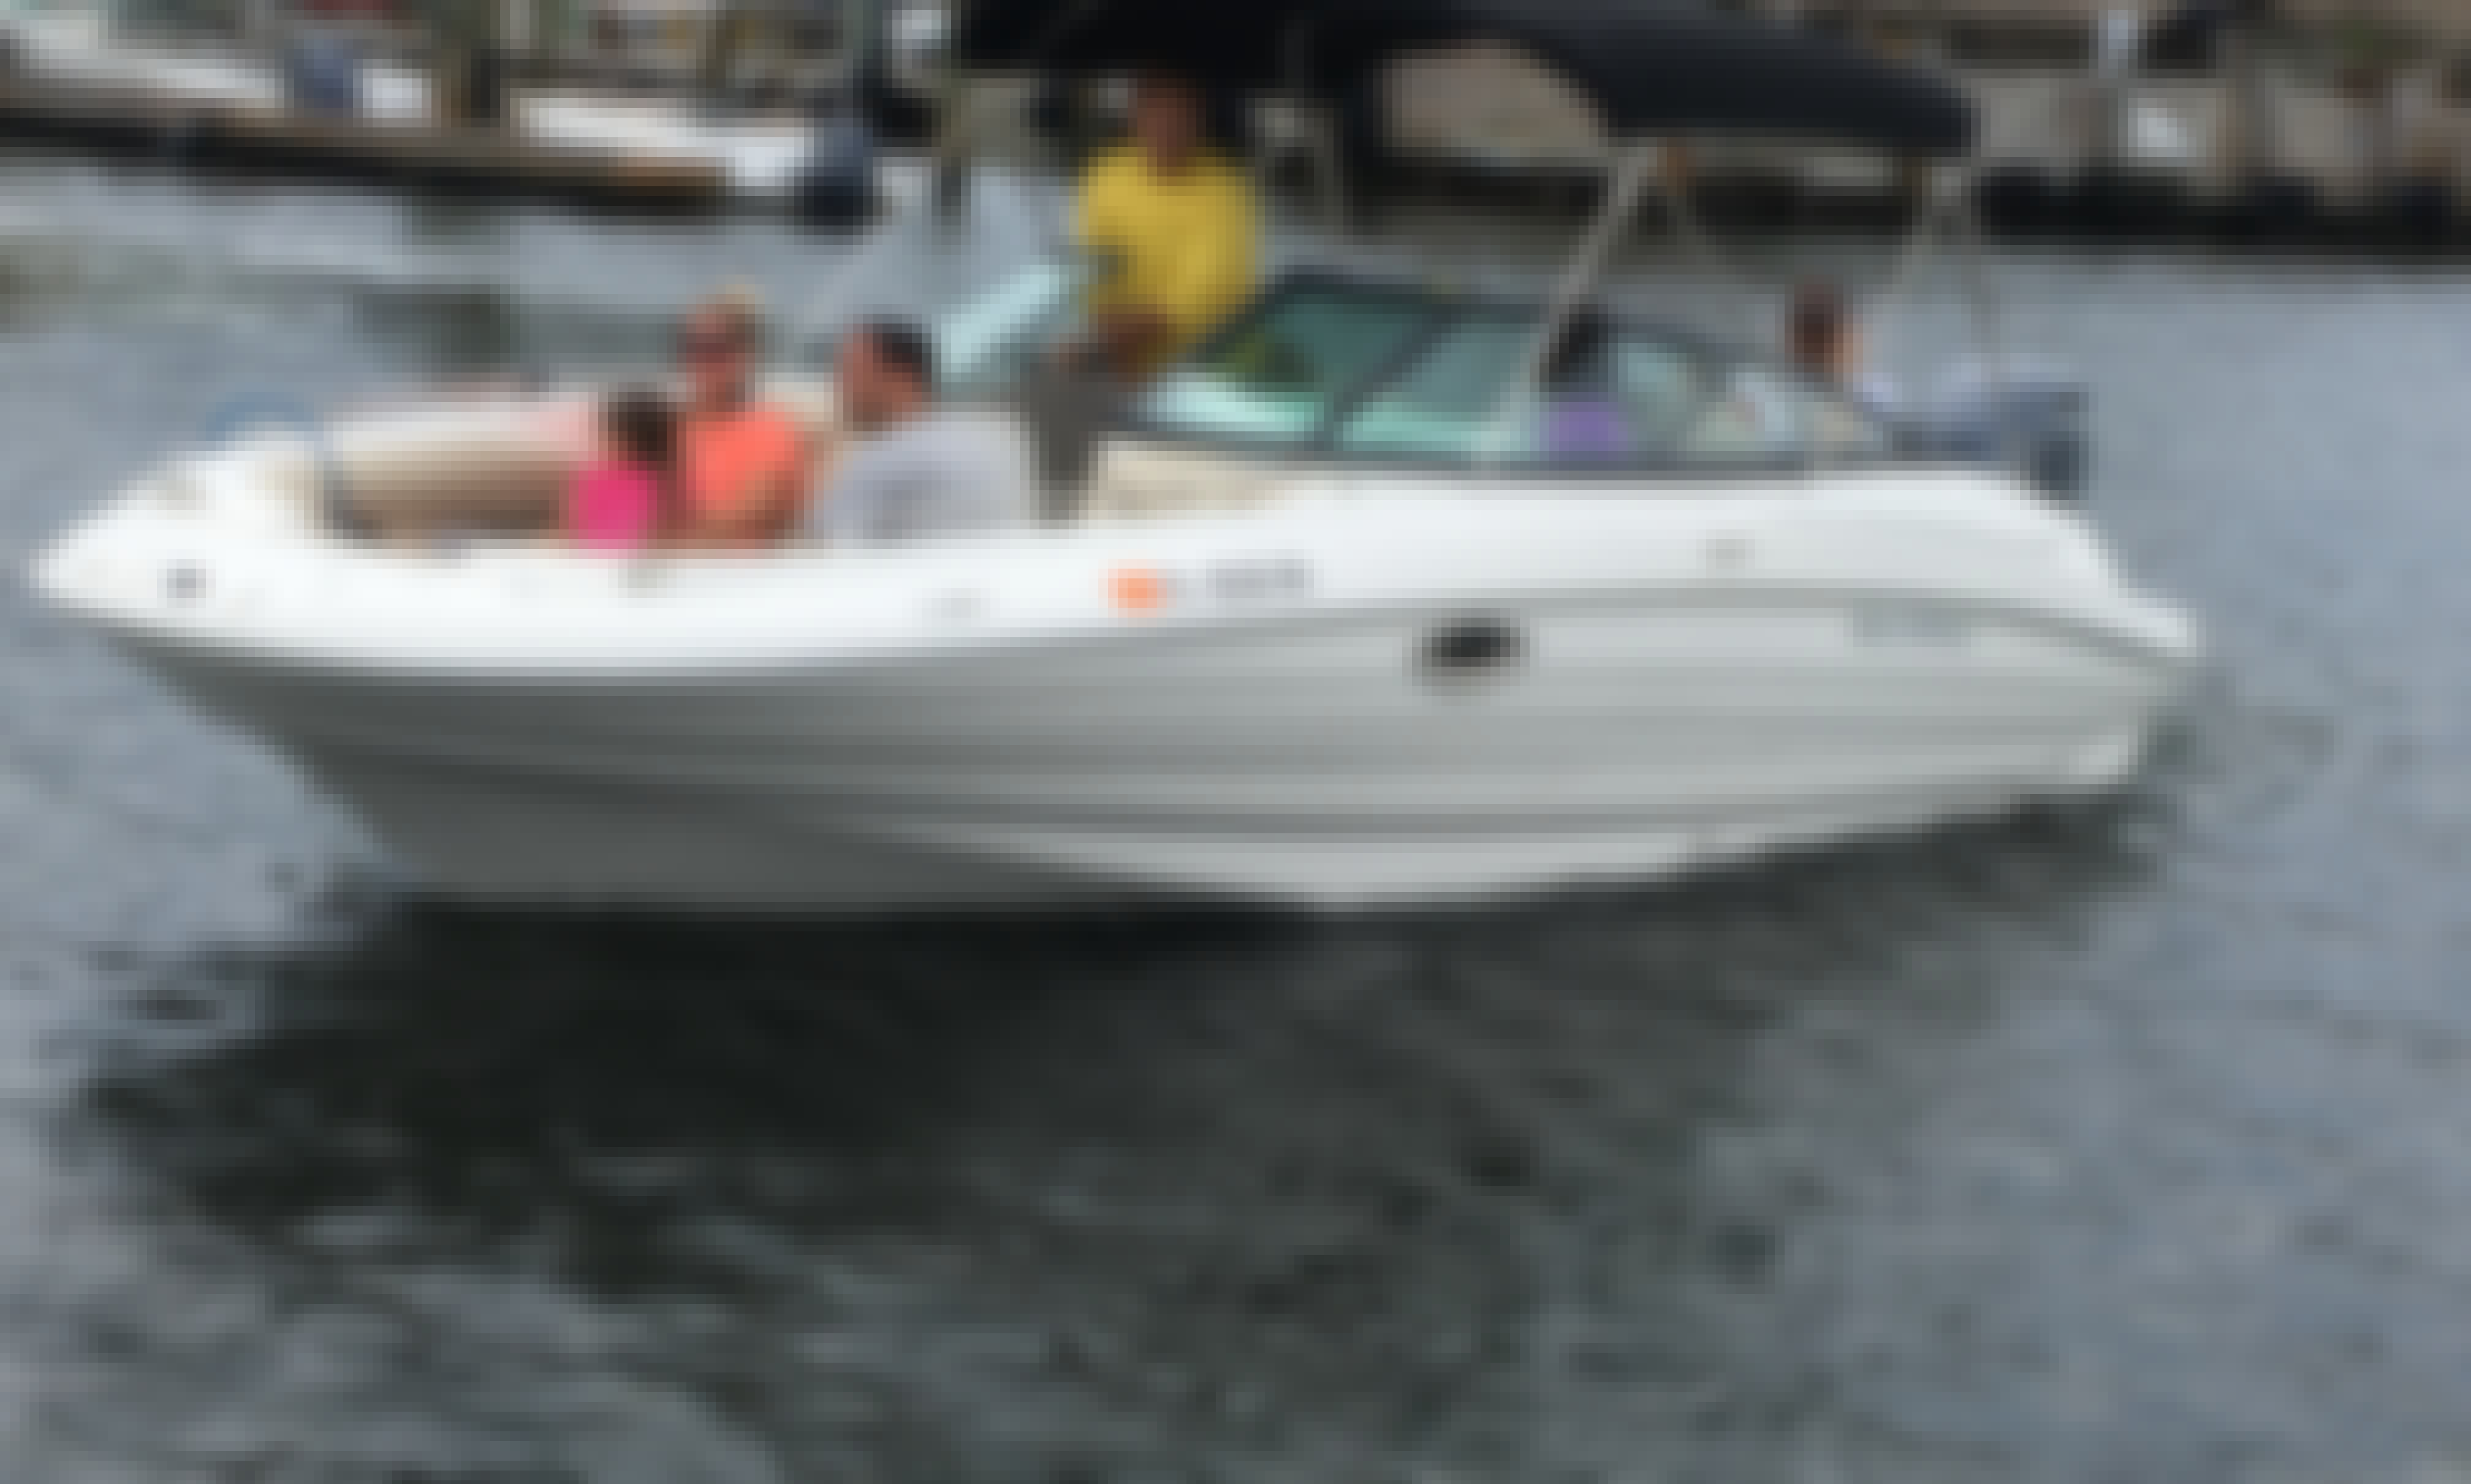 Brand New Nautic Star 21 For Rent in Hollywood, Florida!